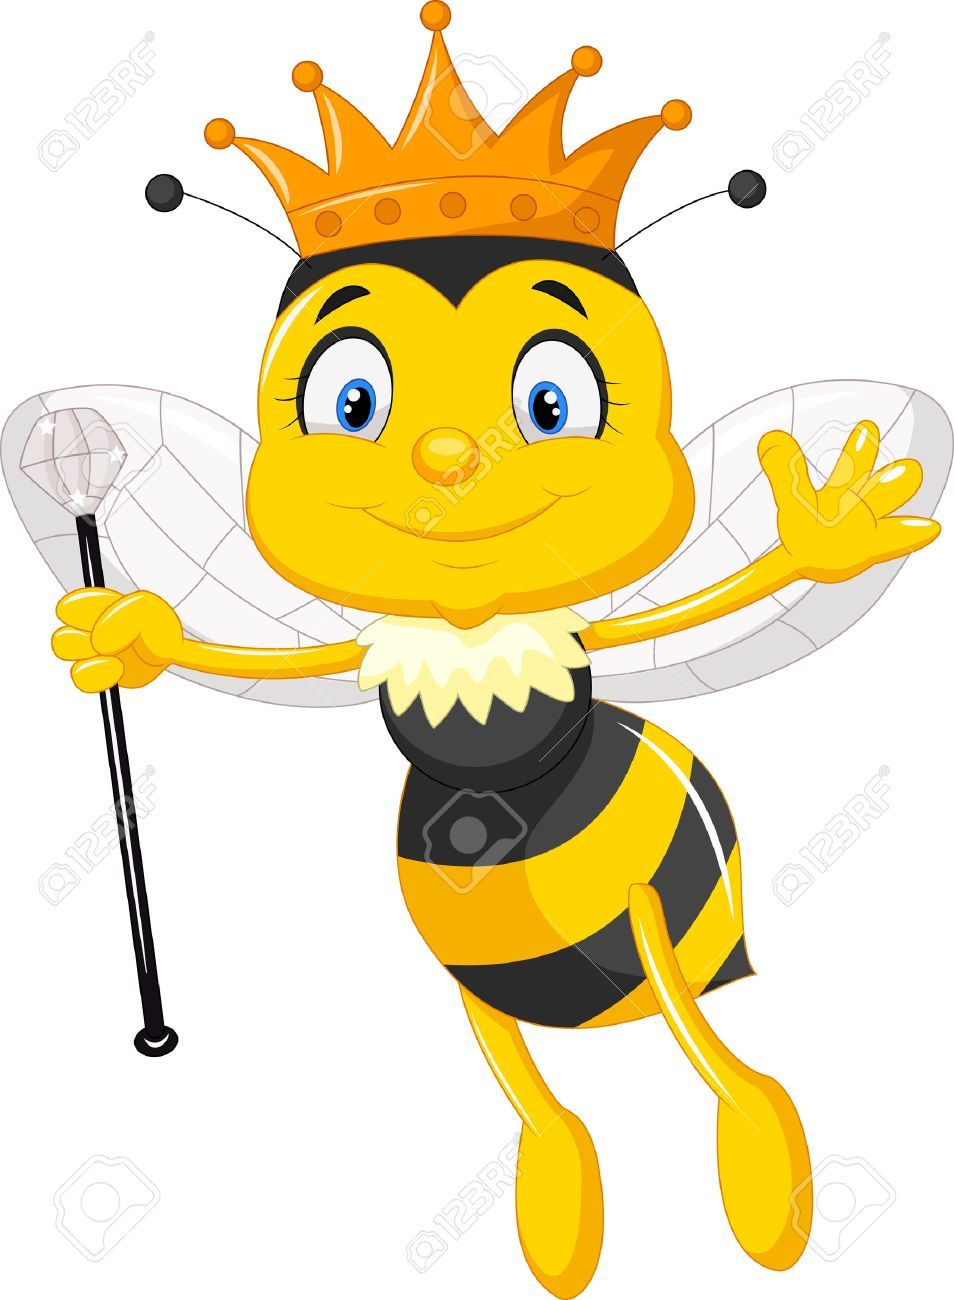 Queen bee clipart free 6 » Clipart Portal.